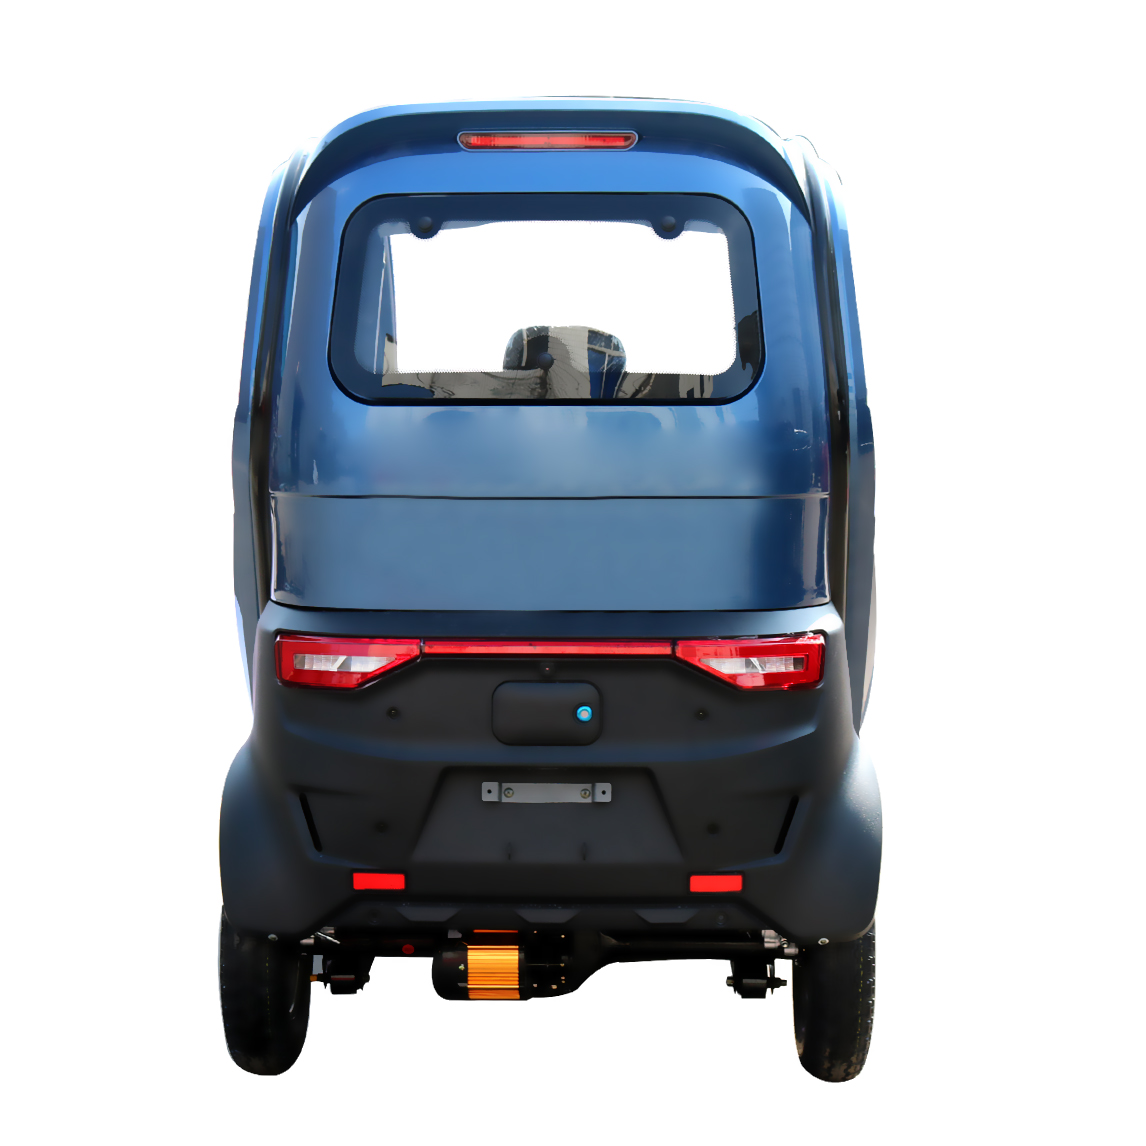 changli The best quality electric four-wheel bus electric vehicle with air conditioning